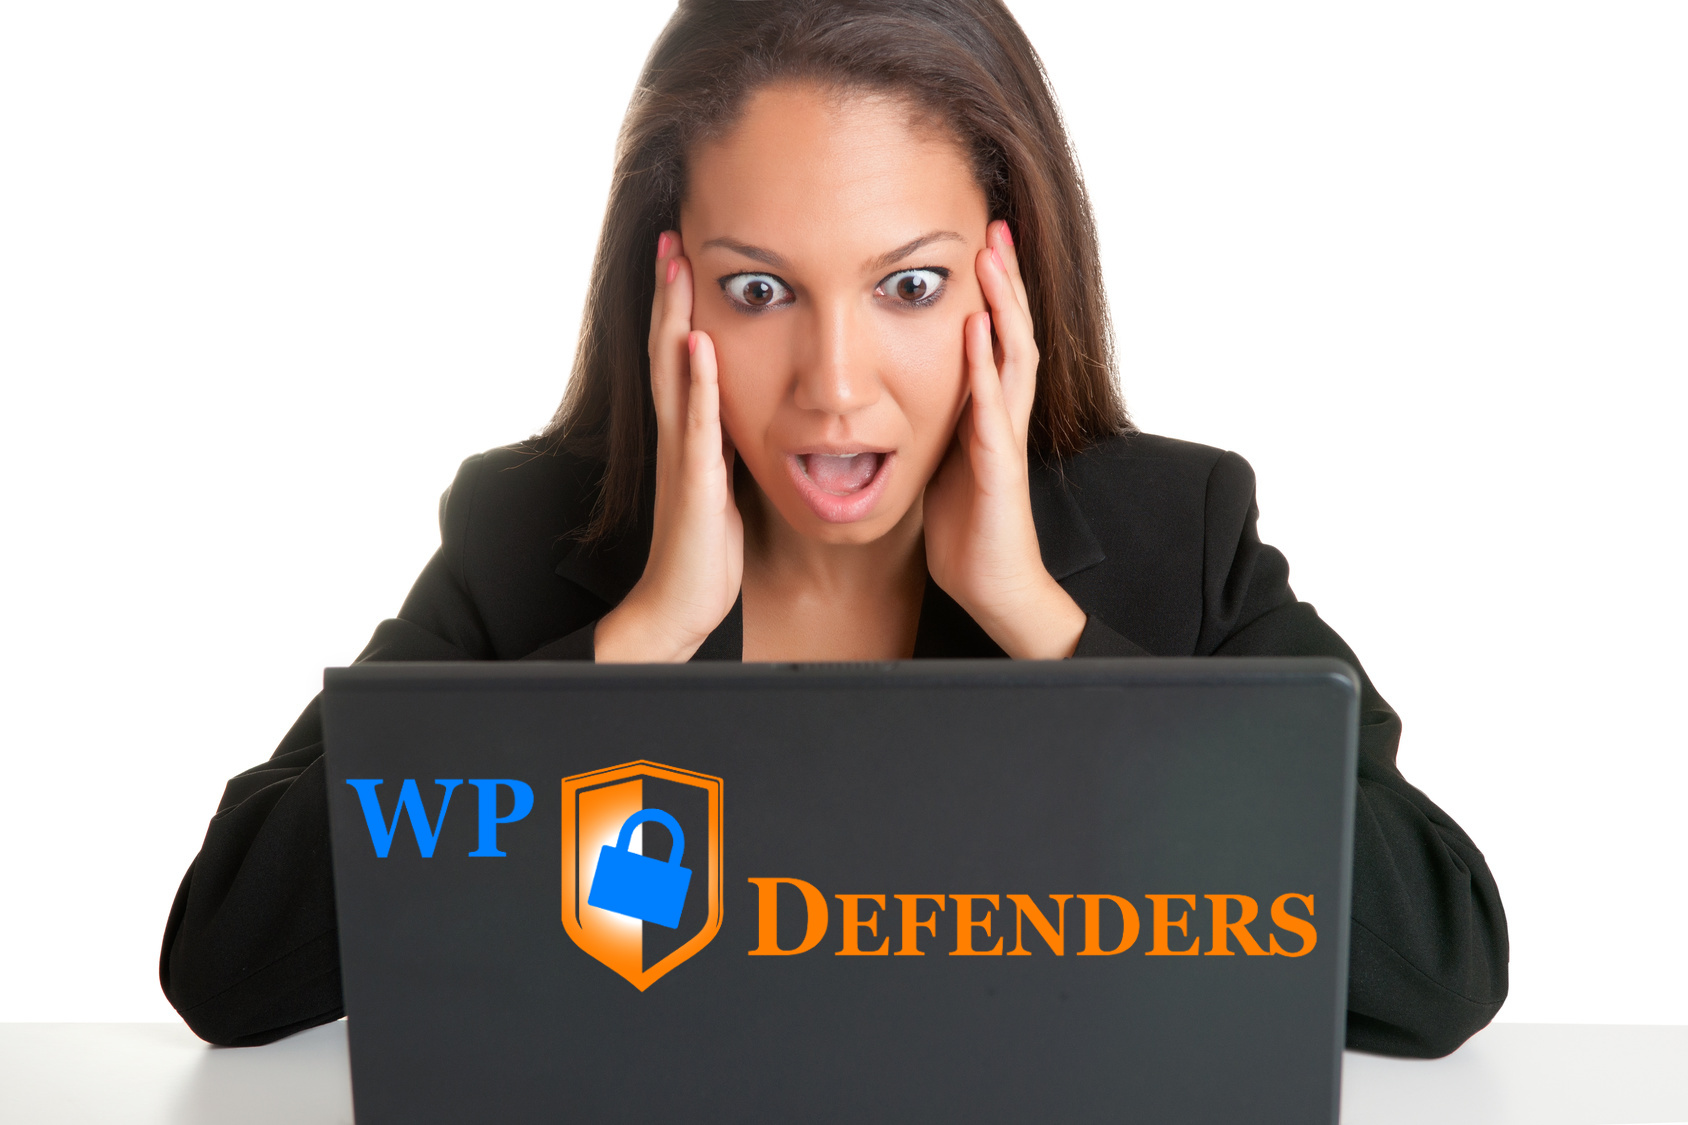 Don't let your WordPress site get hacked,  Secure it WP Security Implementation